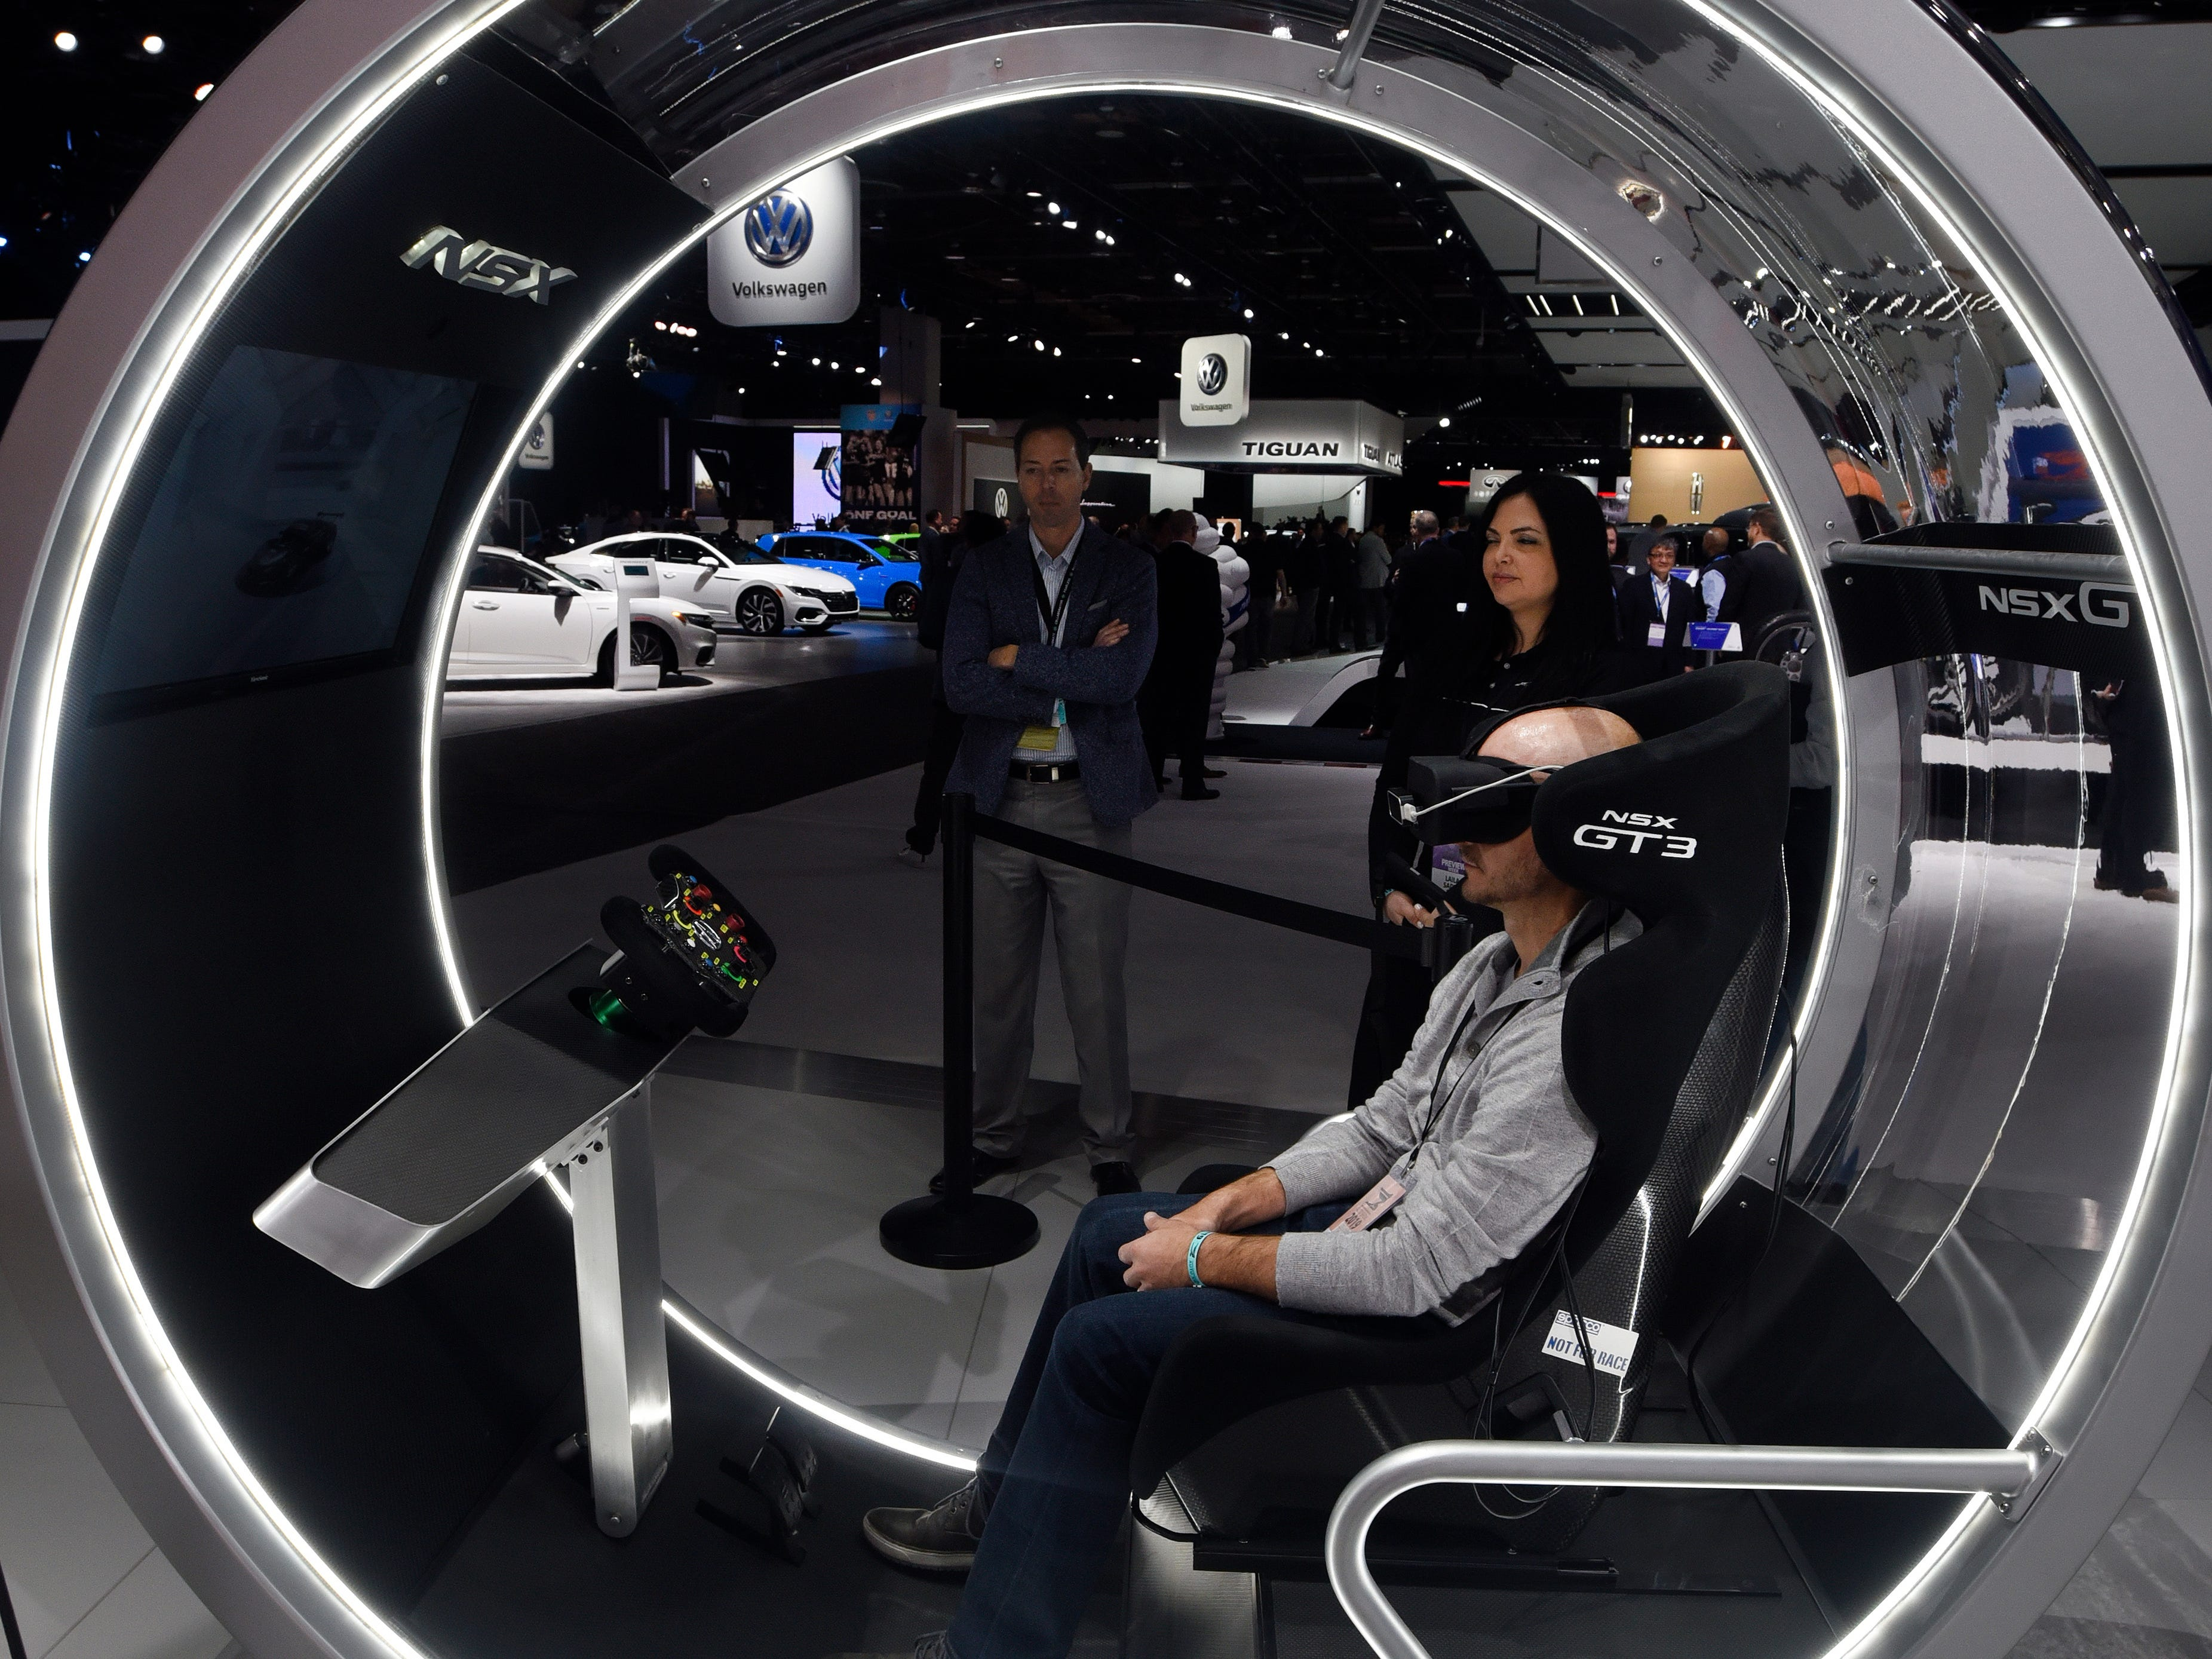 Darren Parker of American Express wears an Oculus at the Acura booth so he can get a virtual reality tour of the new Acura NSX sports car.